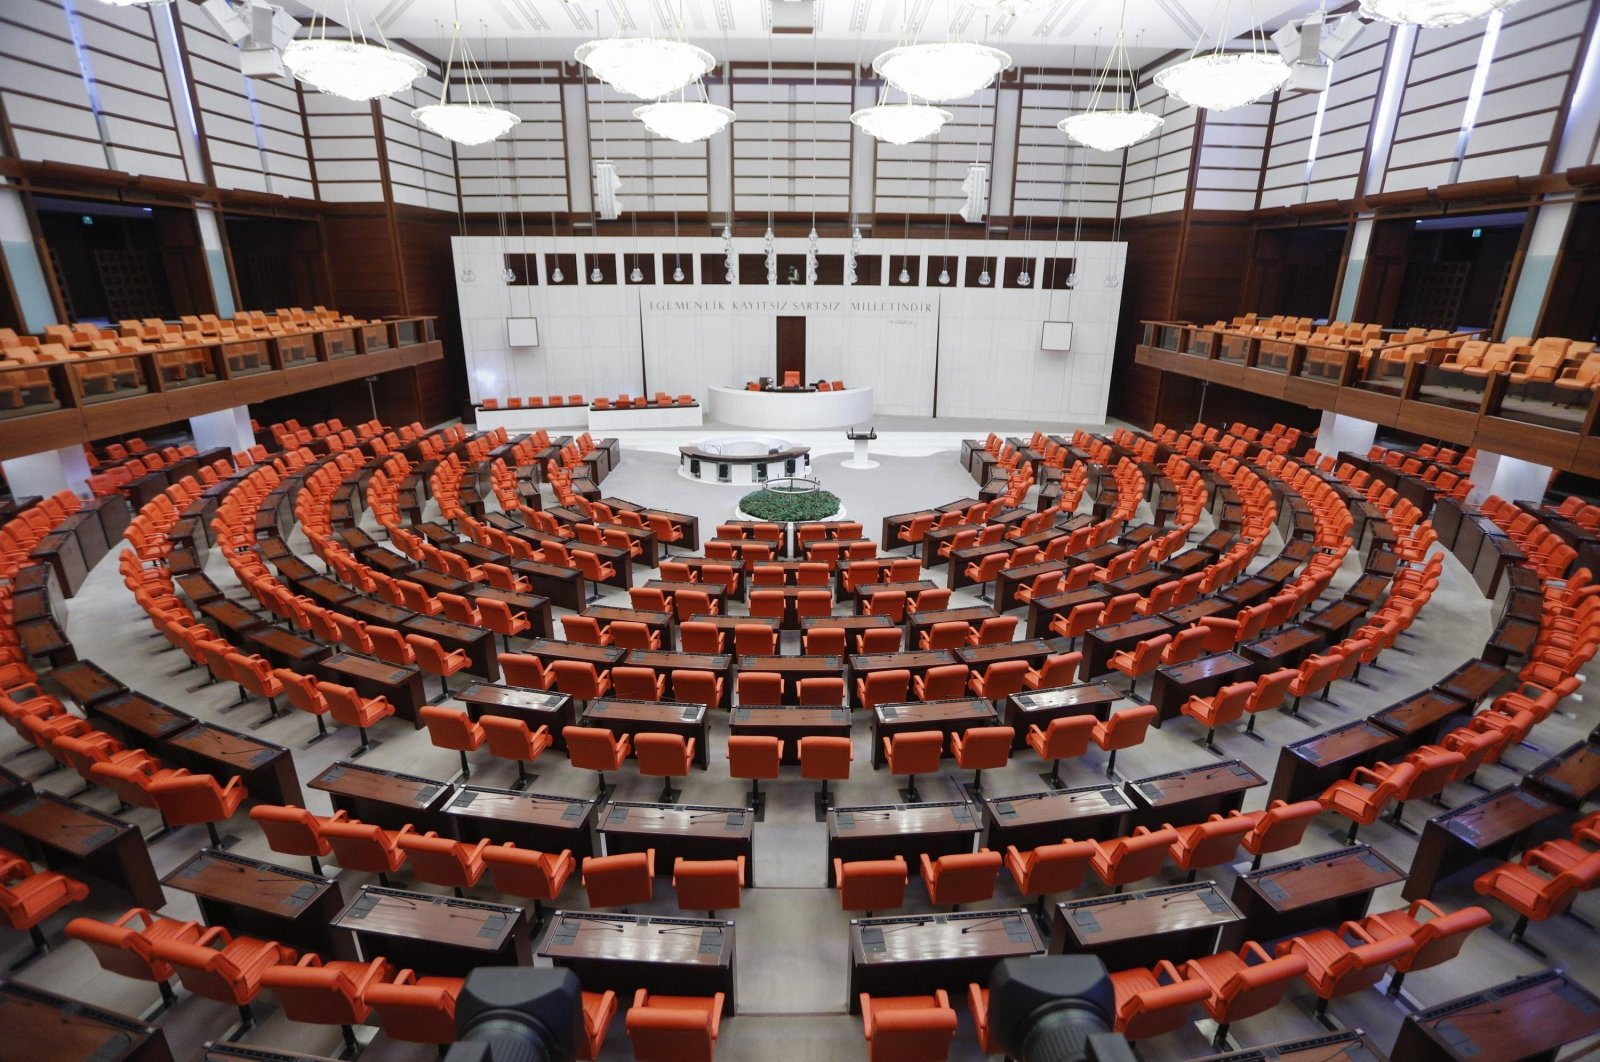 The Turkish Grand National Assembly (TBMM) undergoing routine disinfection as a precaution against COVID-19, Ankara, Turkey, Sept. 27, 2020 (DHA Photo)